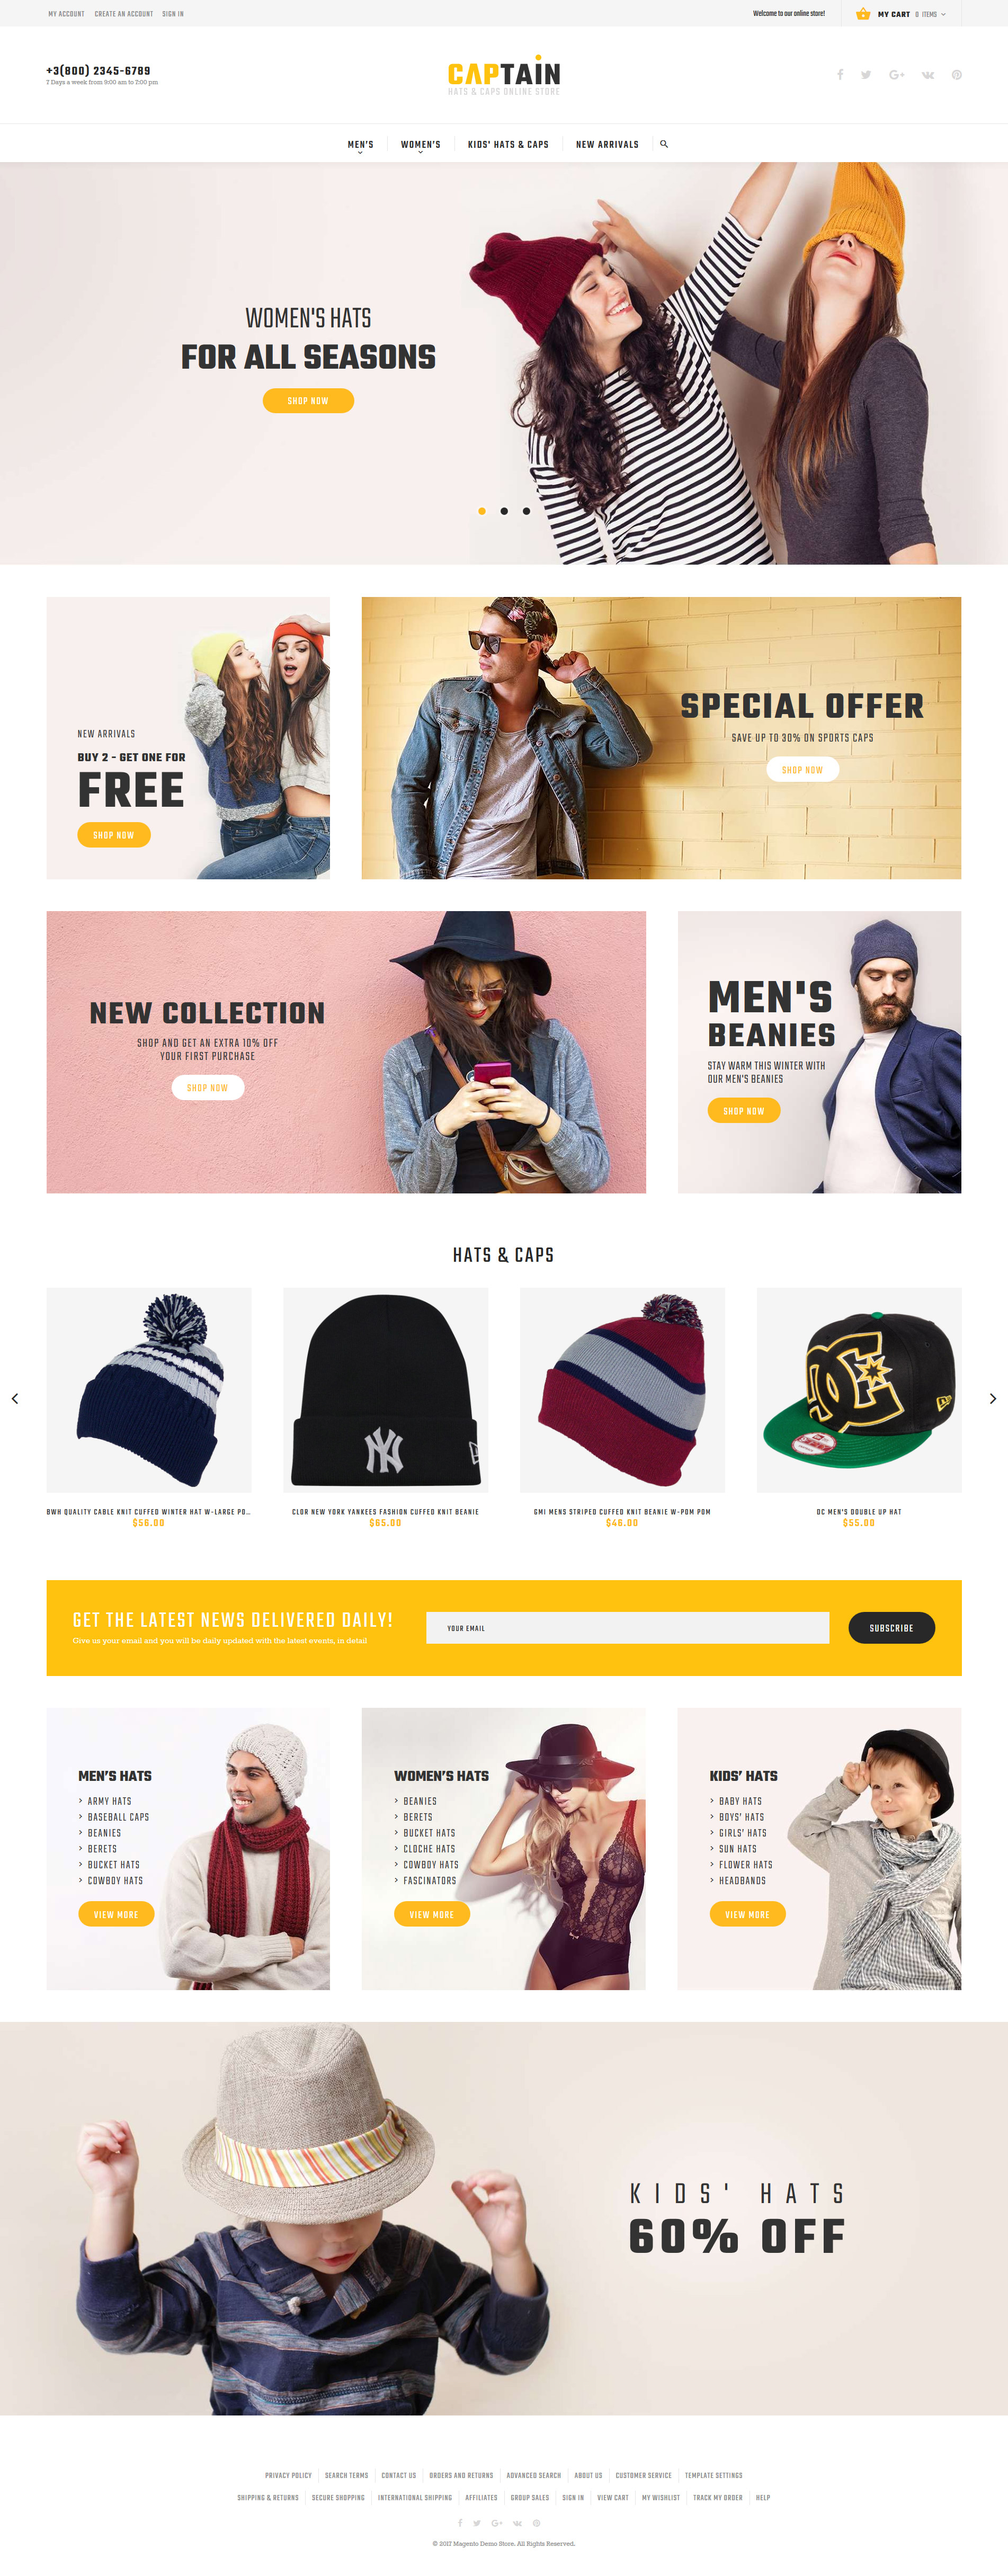 Responsivt Captain - Hats and Caps Online Store Magento-tema #62084 - skärmbild